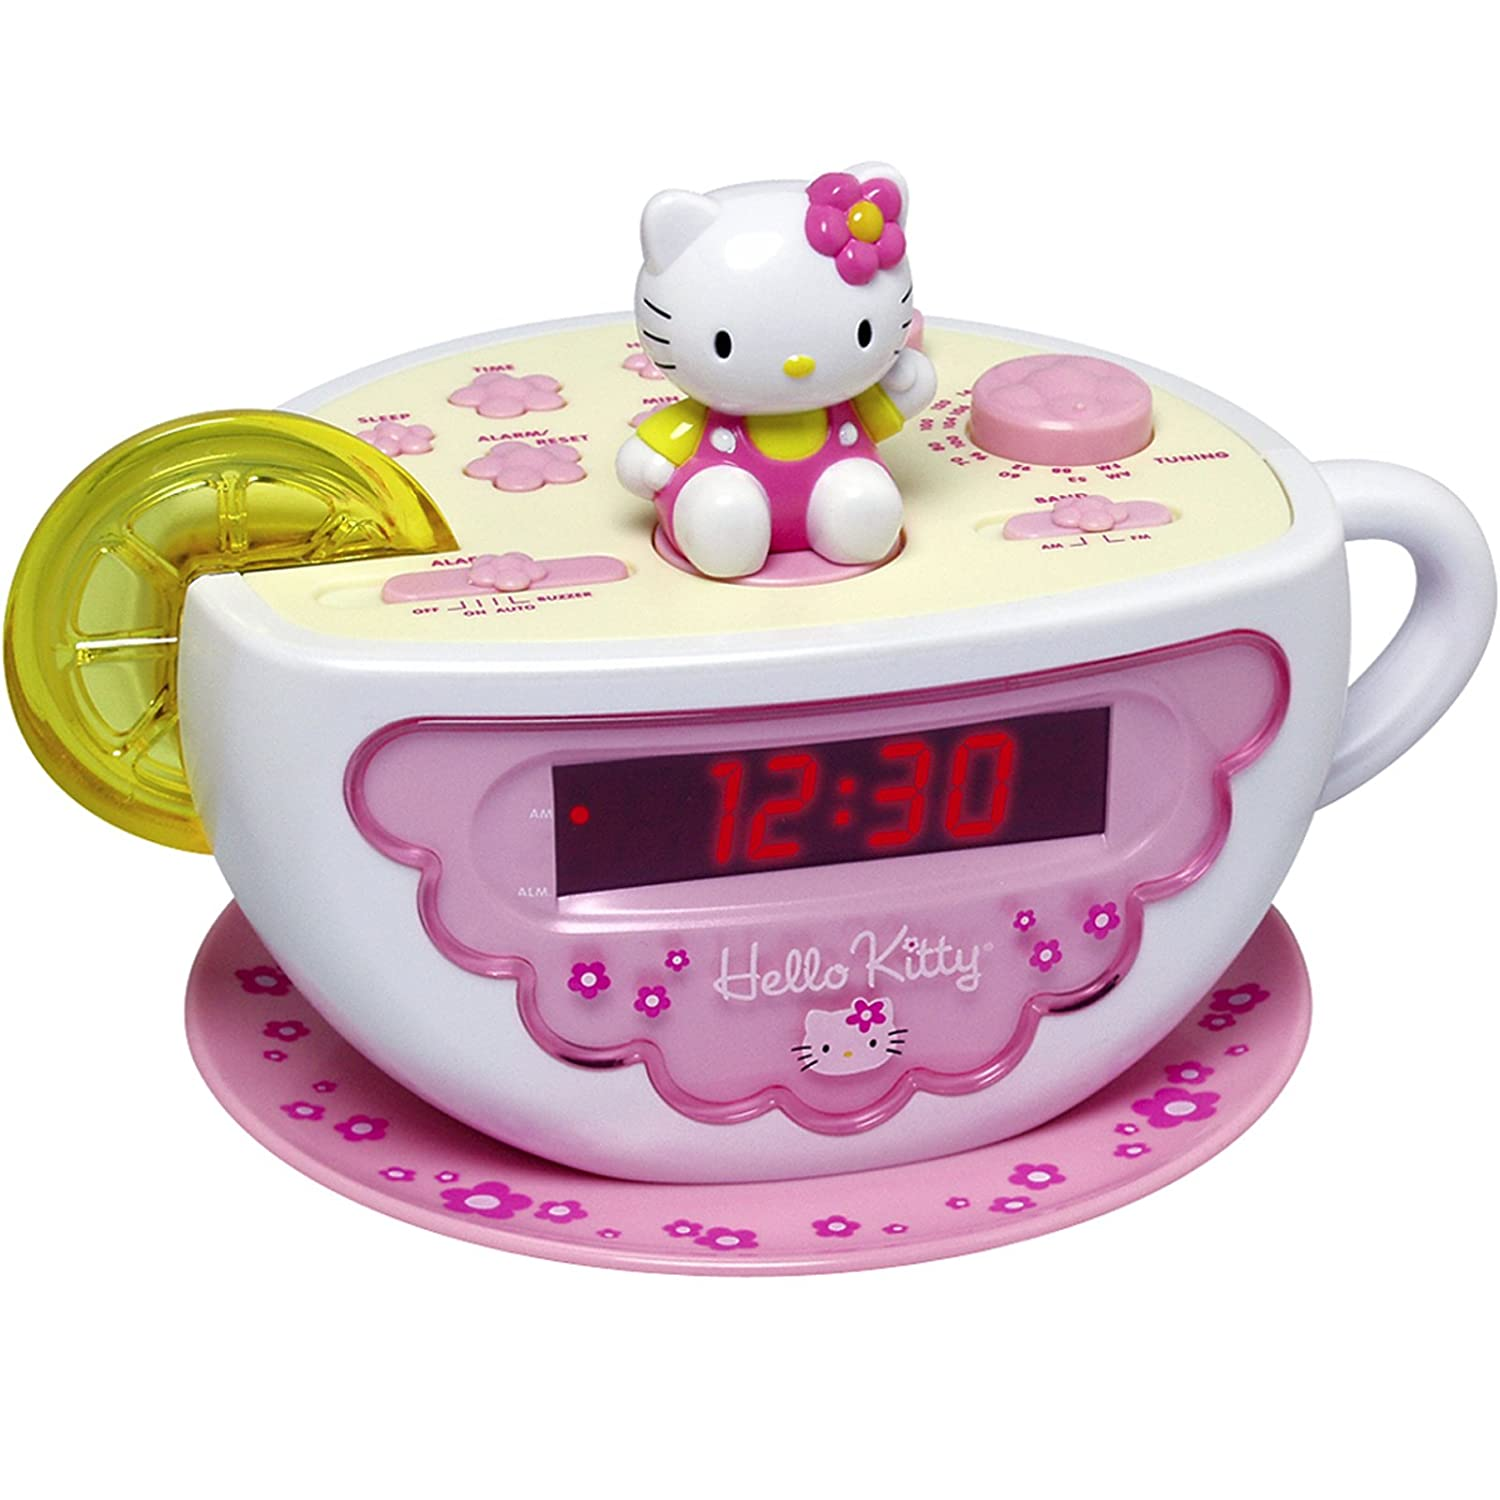 Amazoncom Hello Kitty Digital Clock Radio with AMFM Radio and